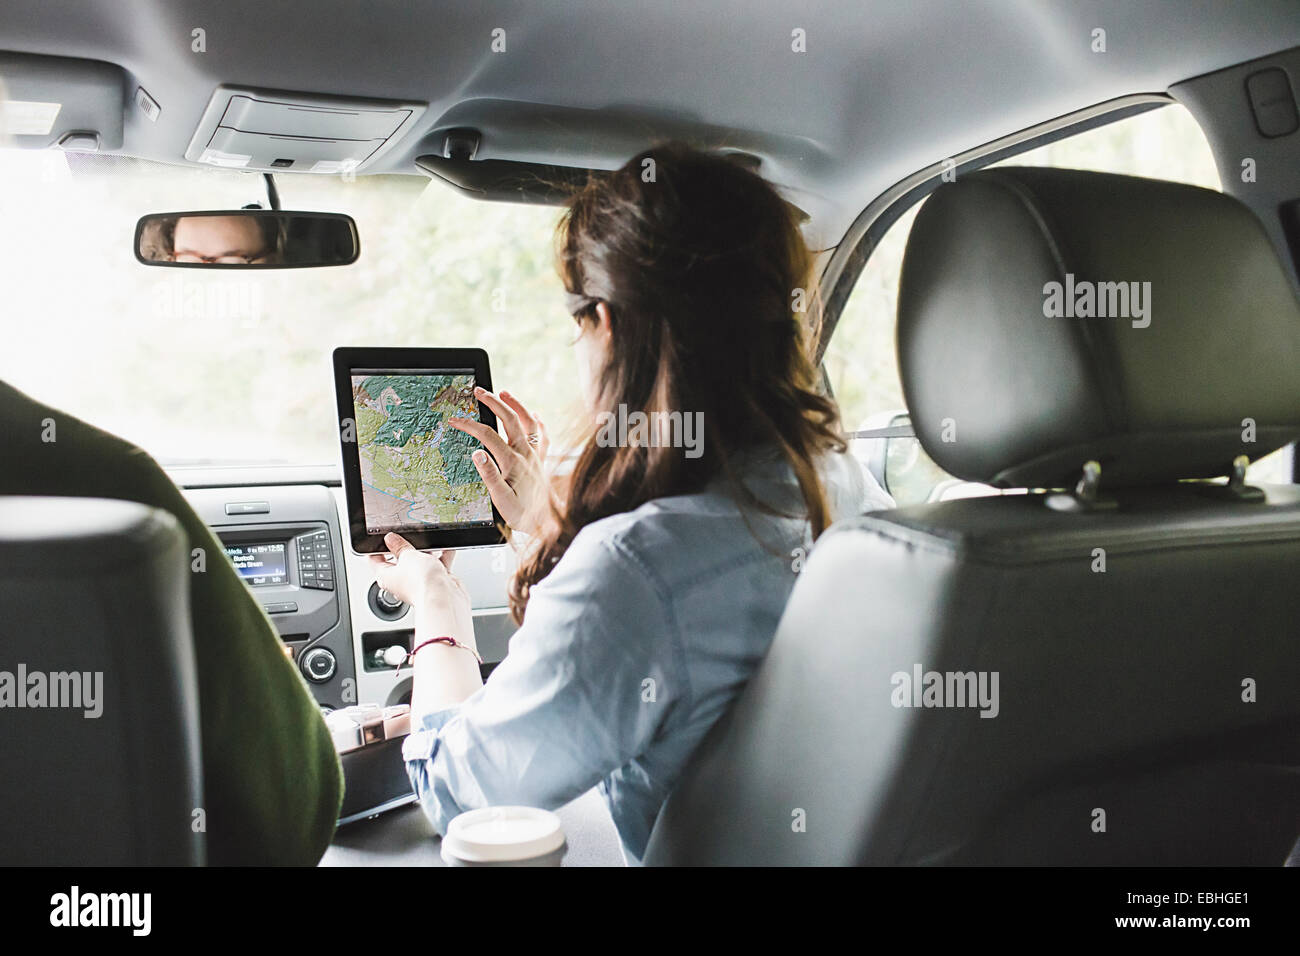 Over shoulder view of young woman in car front seat using digital tablet touchscreen map - Stock Image